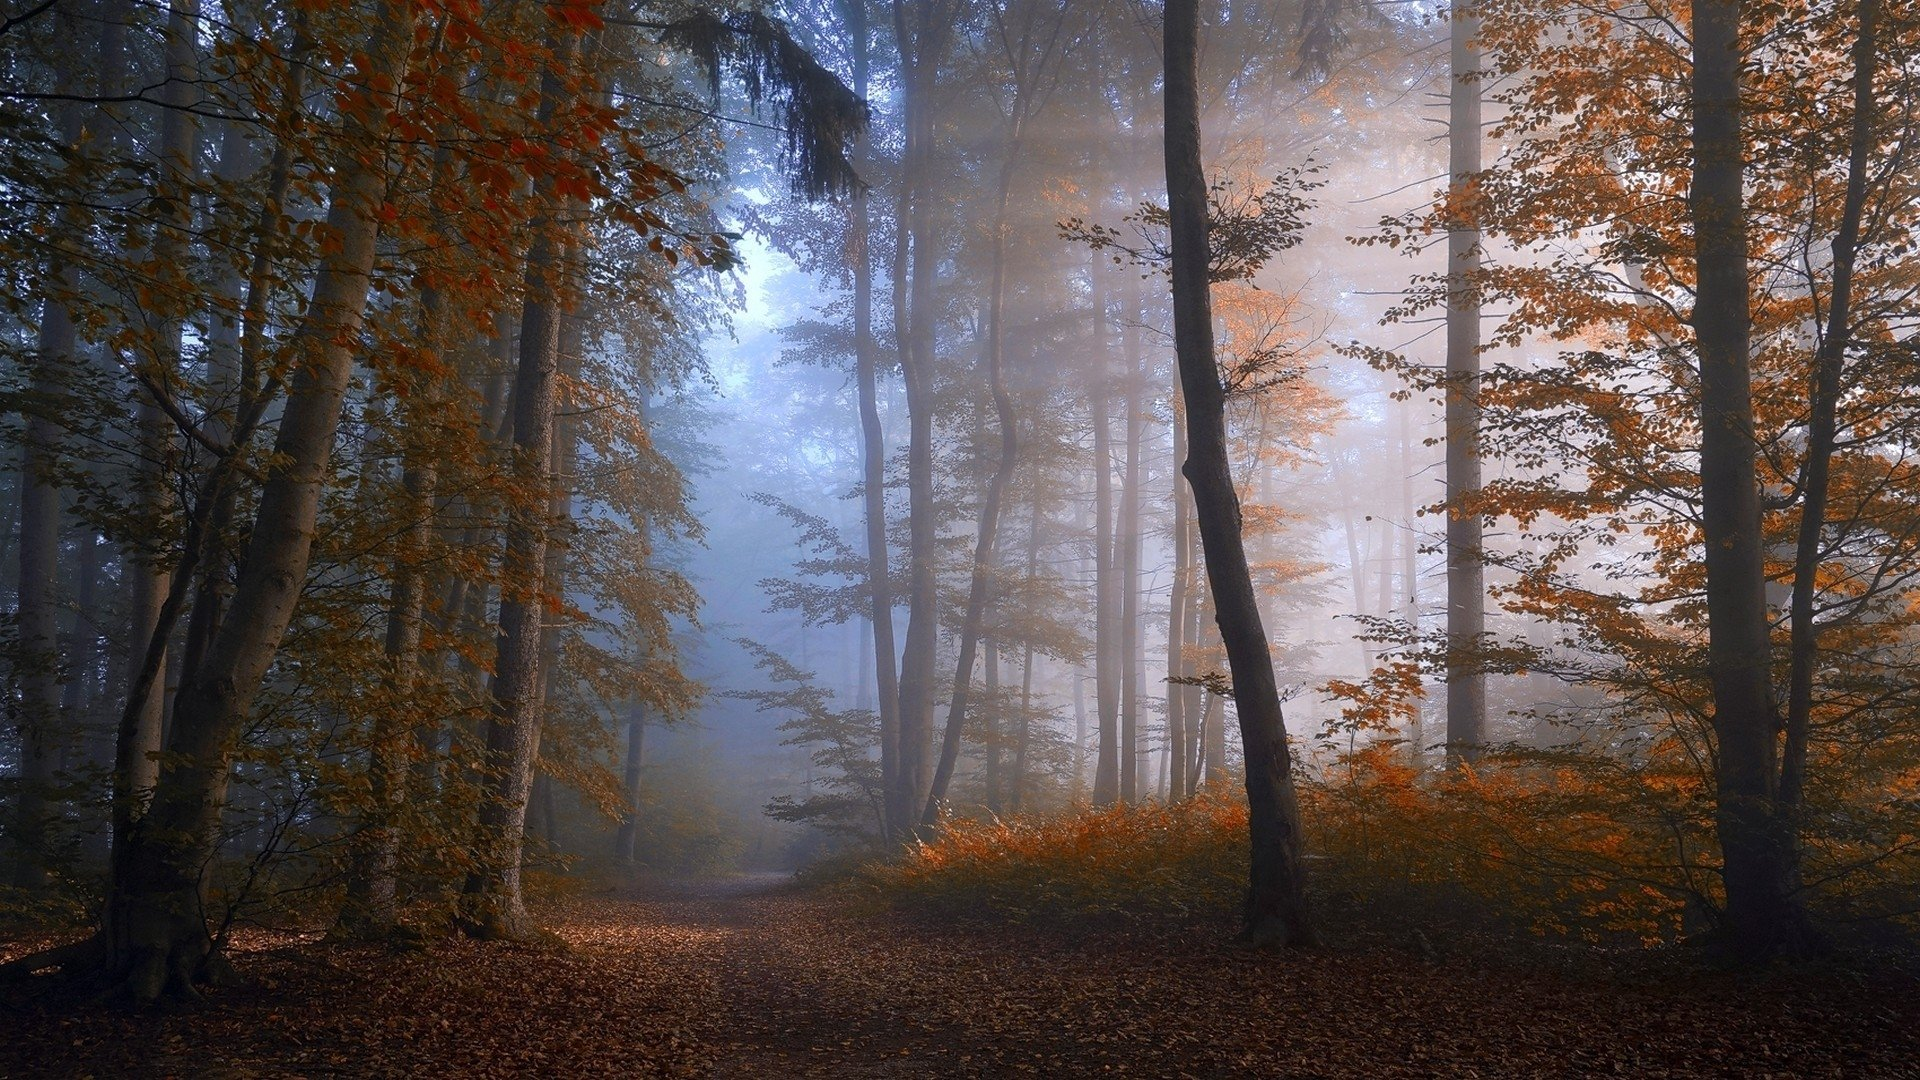 Fall Foliage Iphone Wallpaper Path In Misty Autumn Forest Hd Wallpaper Background